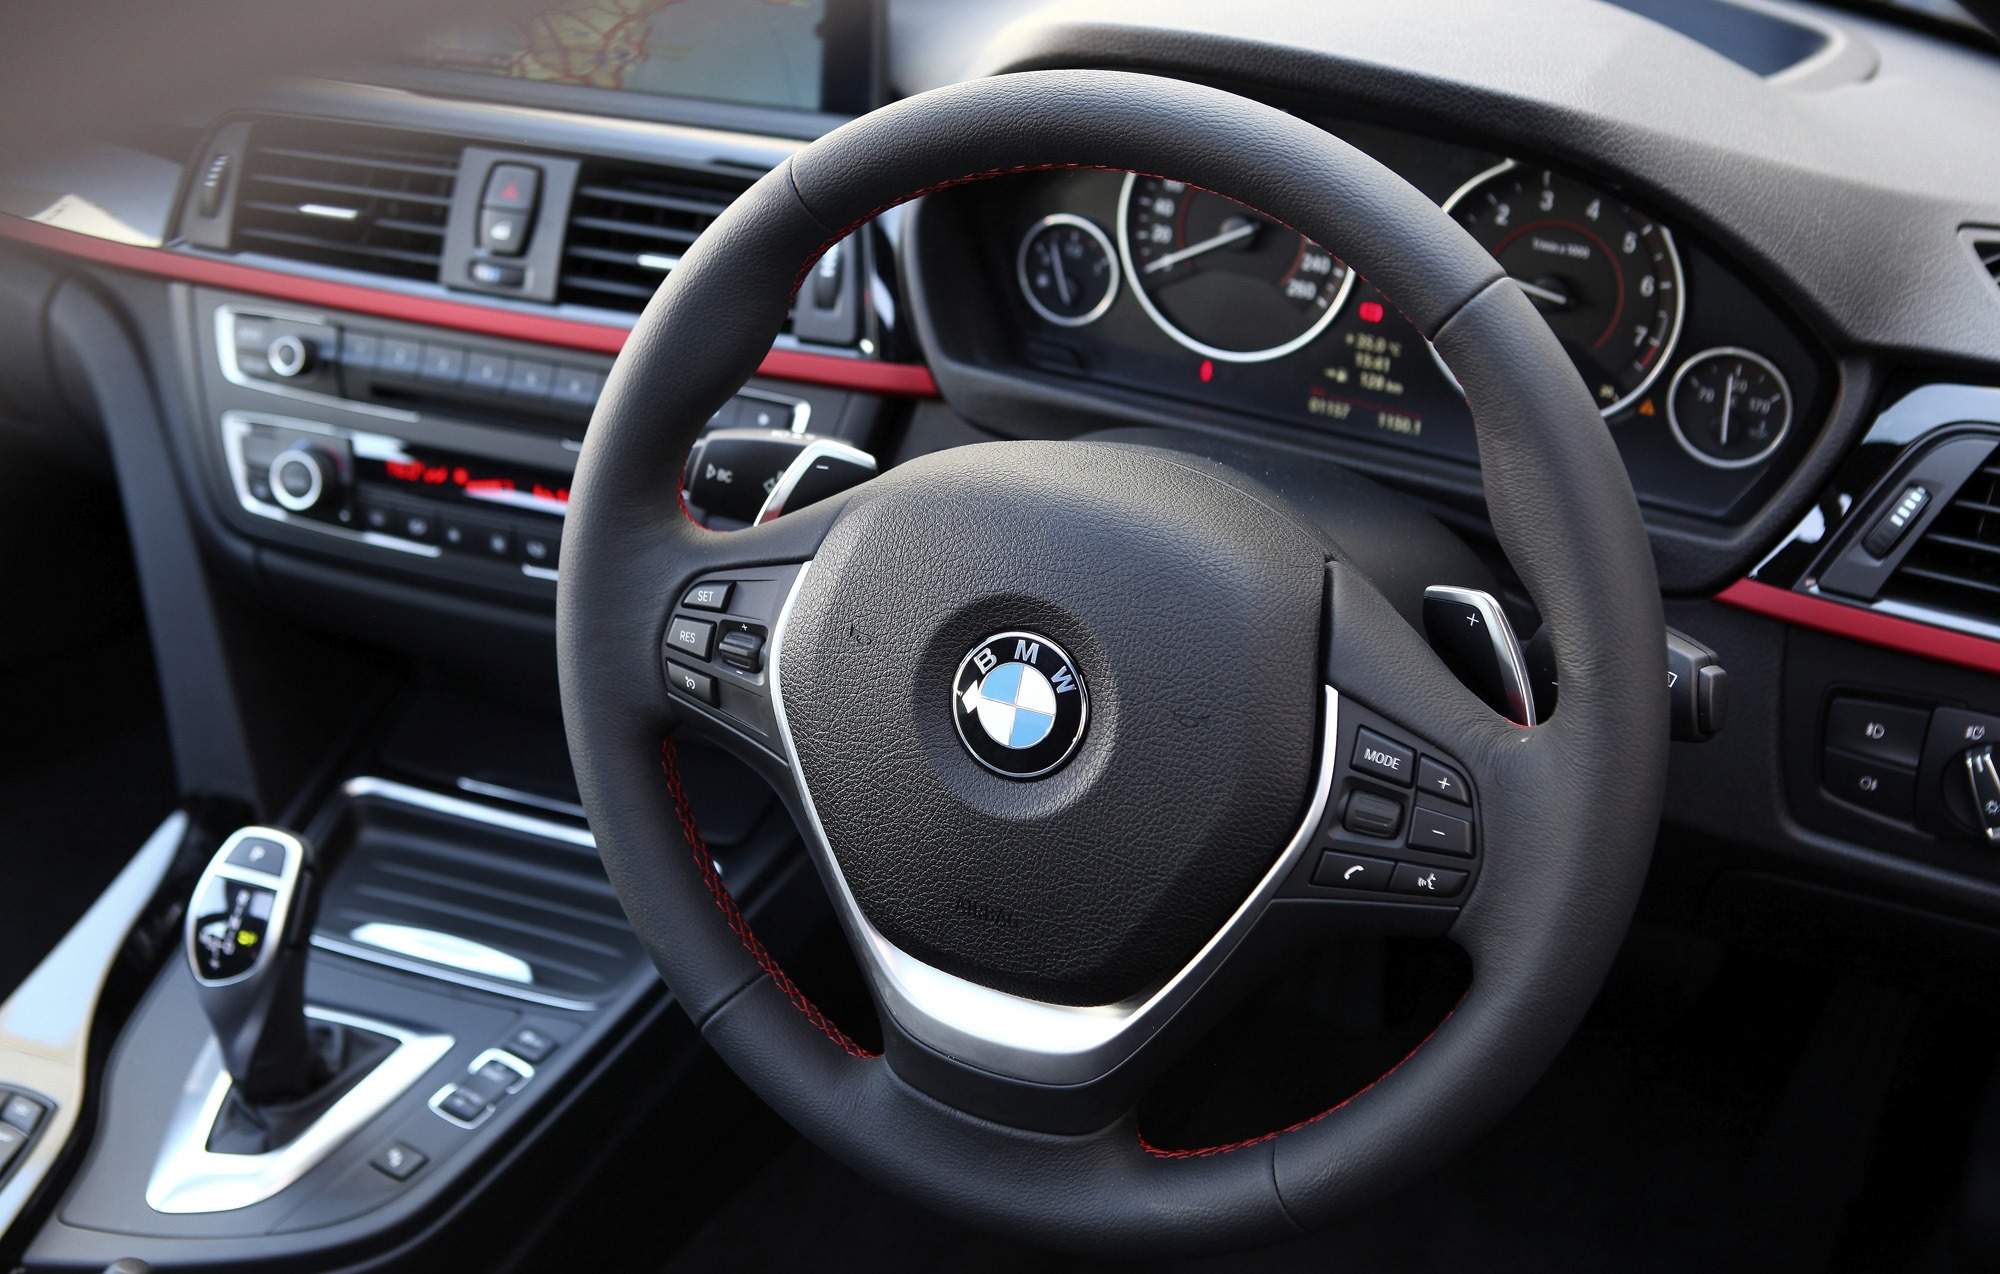 BMW 3 Series 2020 Interior Dashboard